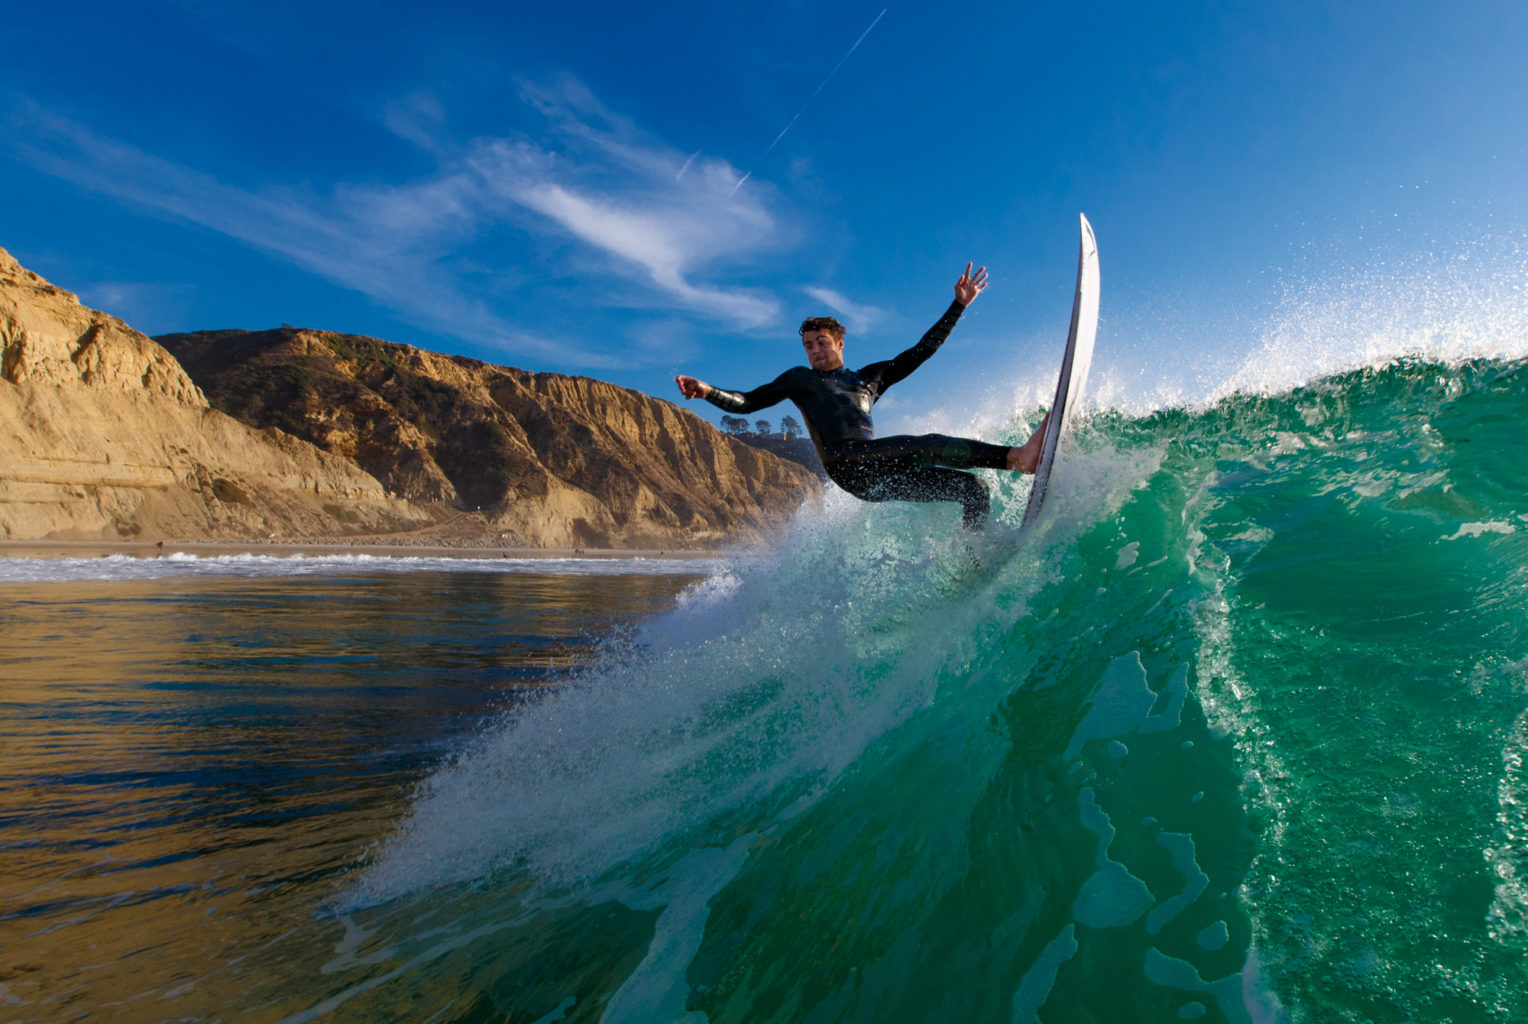 Water photo of surfing at Black's Beach in San Diego, California. Photo: Mark Johnson/Ironstring